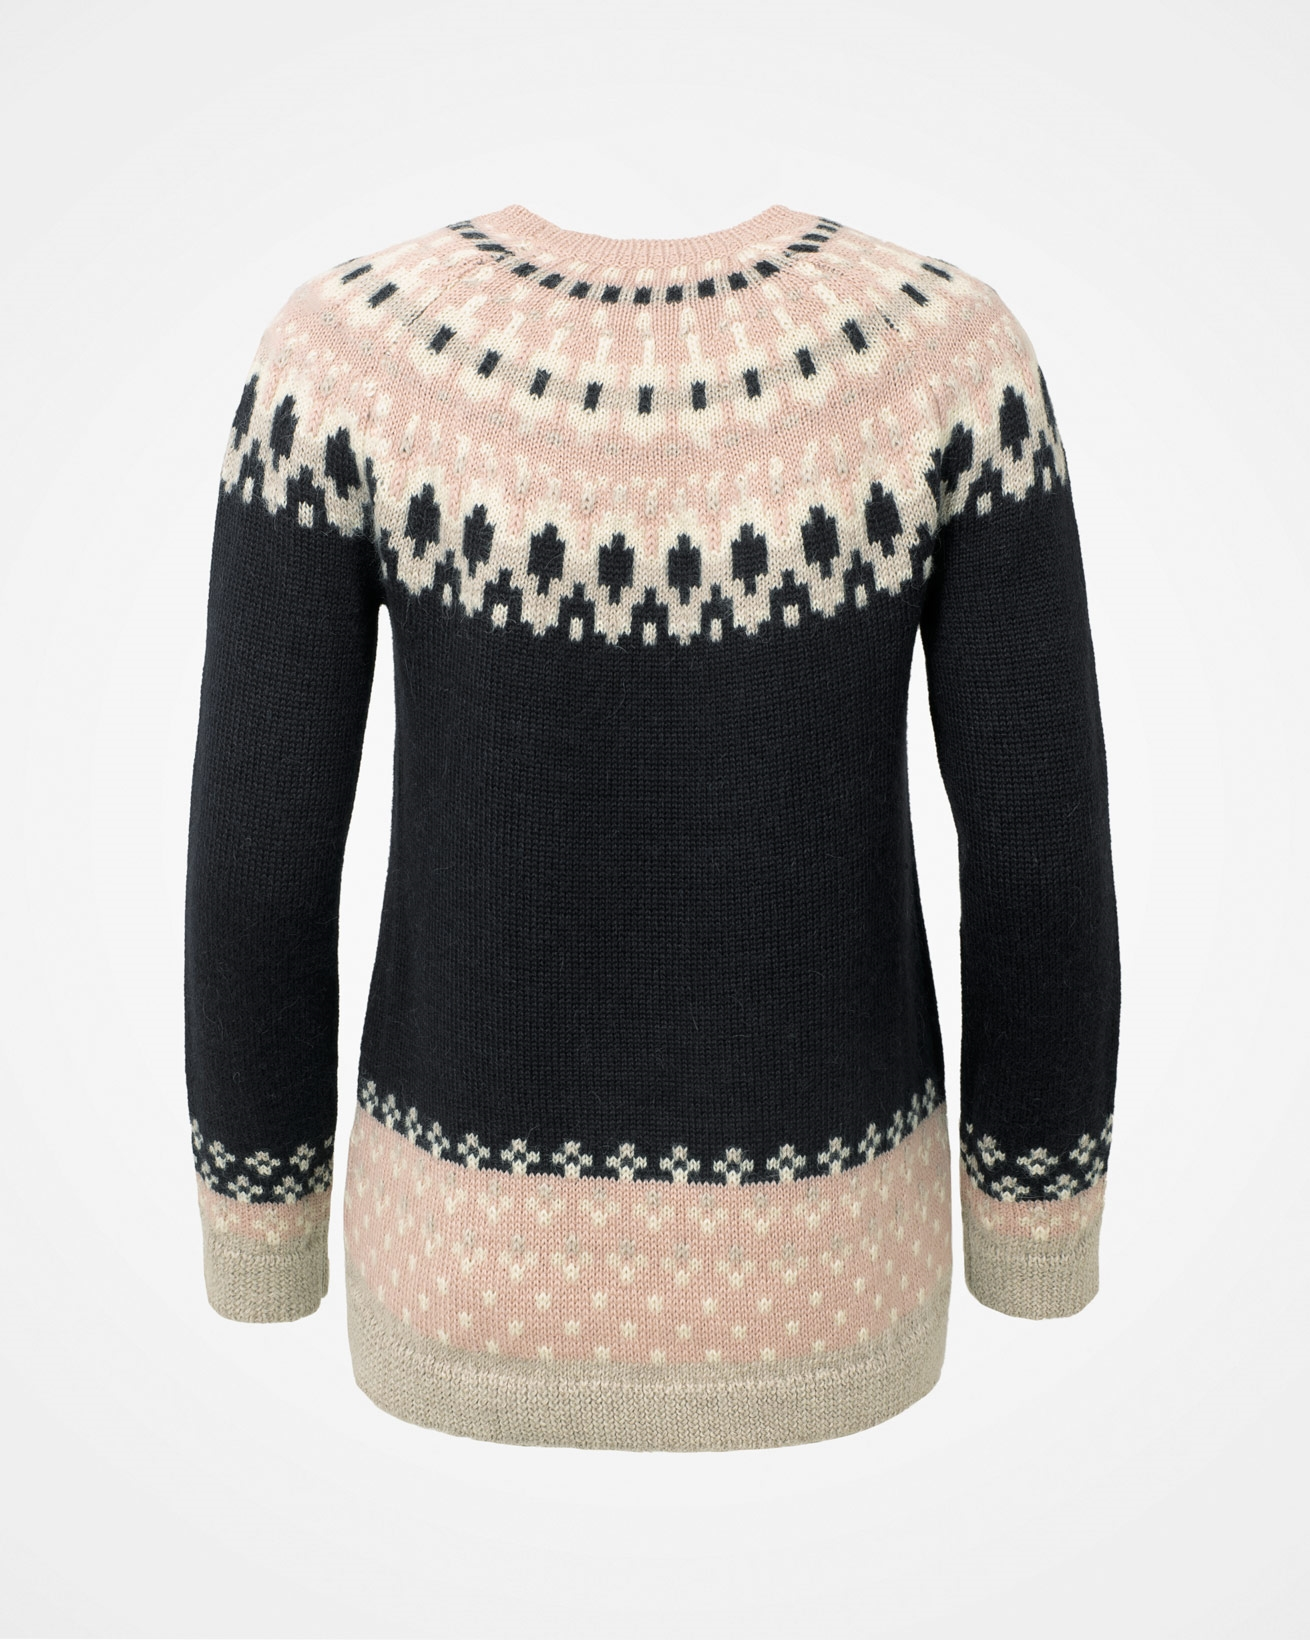 8702_icon-fairisle-jumper-navy-peony_back_v2.jpg